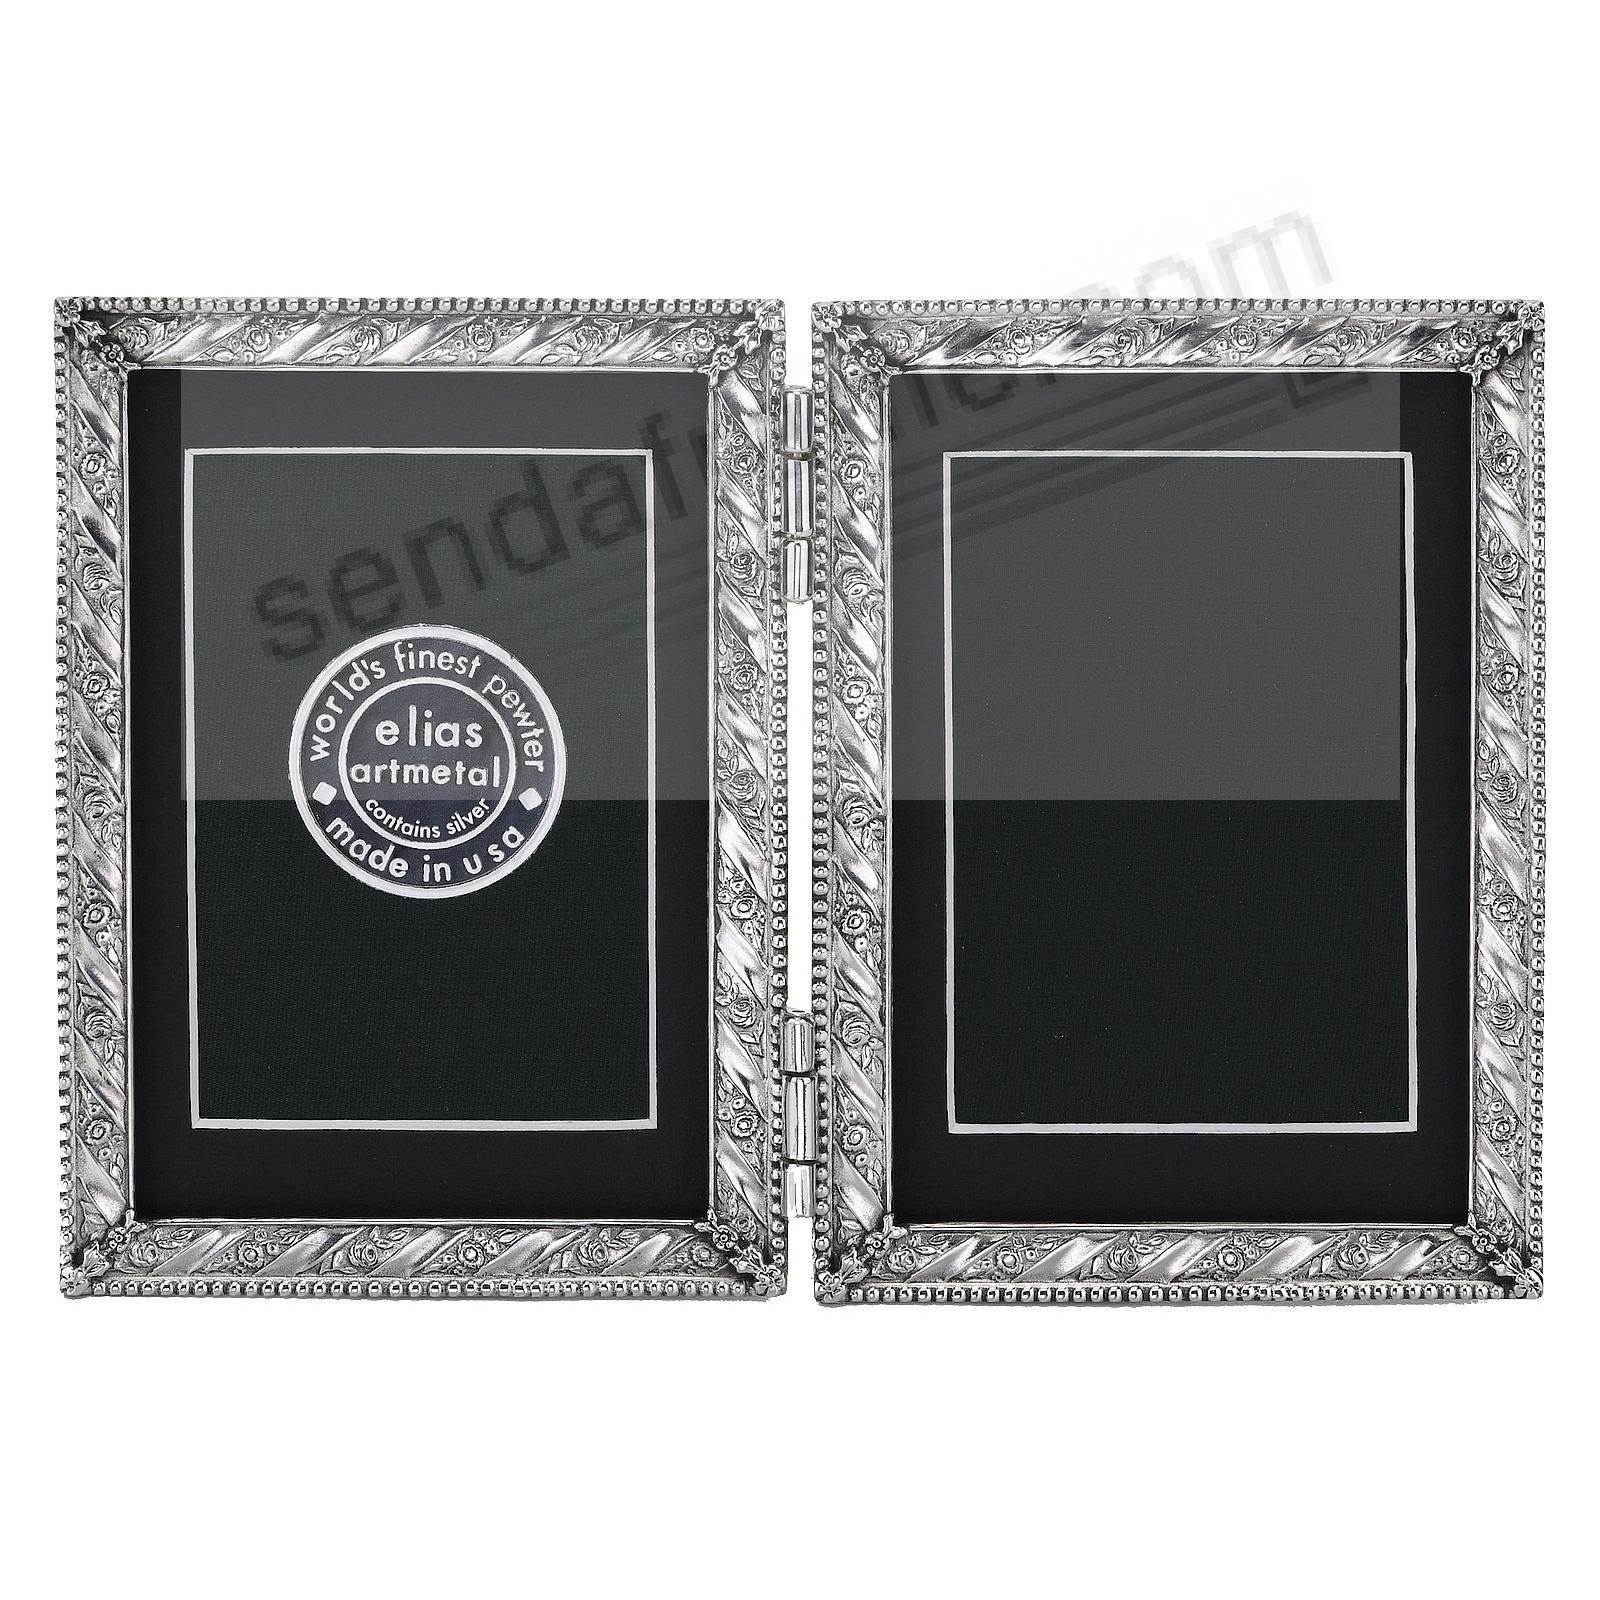 GIFTWRAP luxe silvered fine pewter DOUBLE HINGED 3x4 by Elias Artmetal®